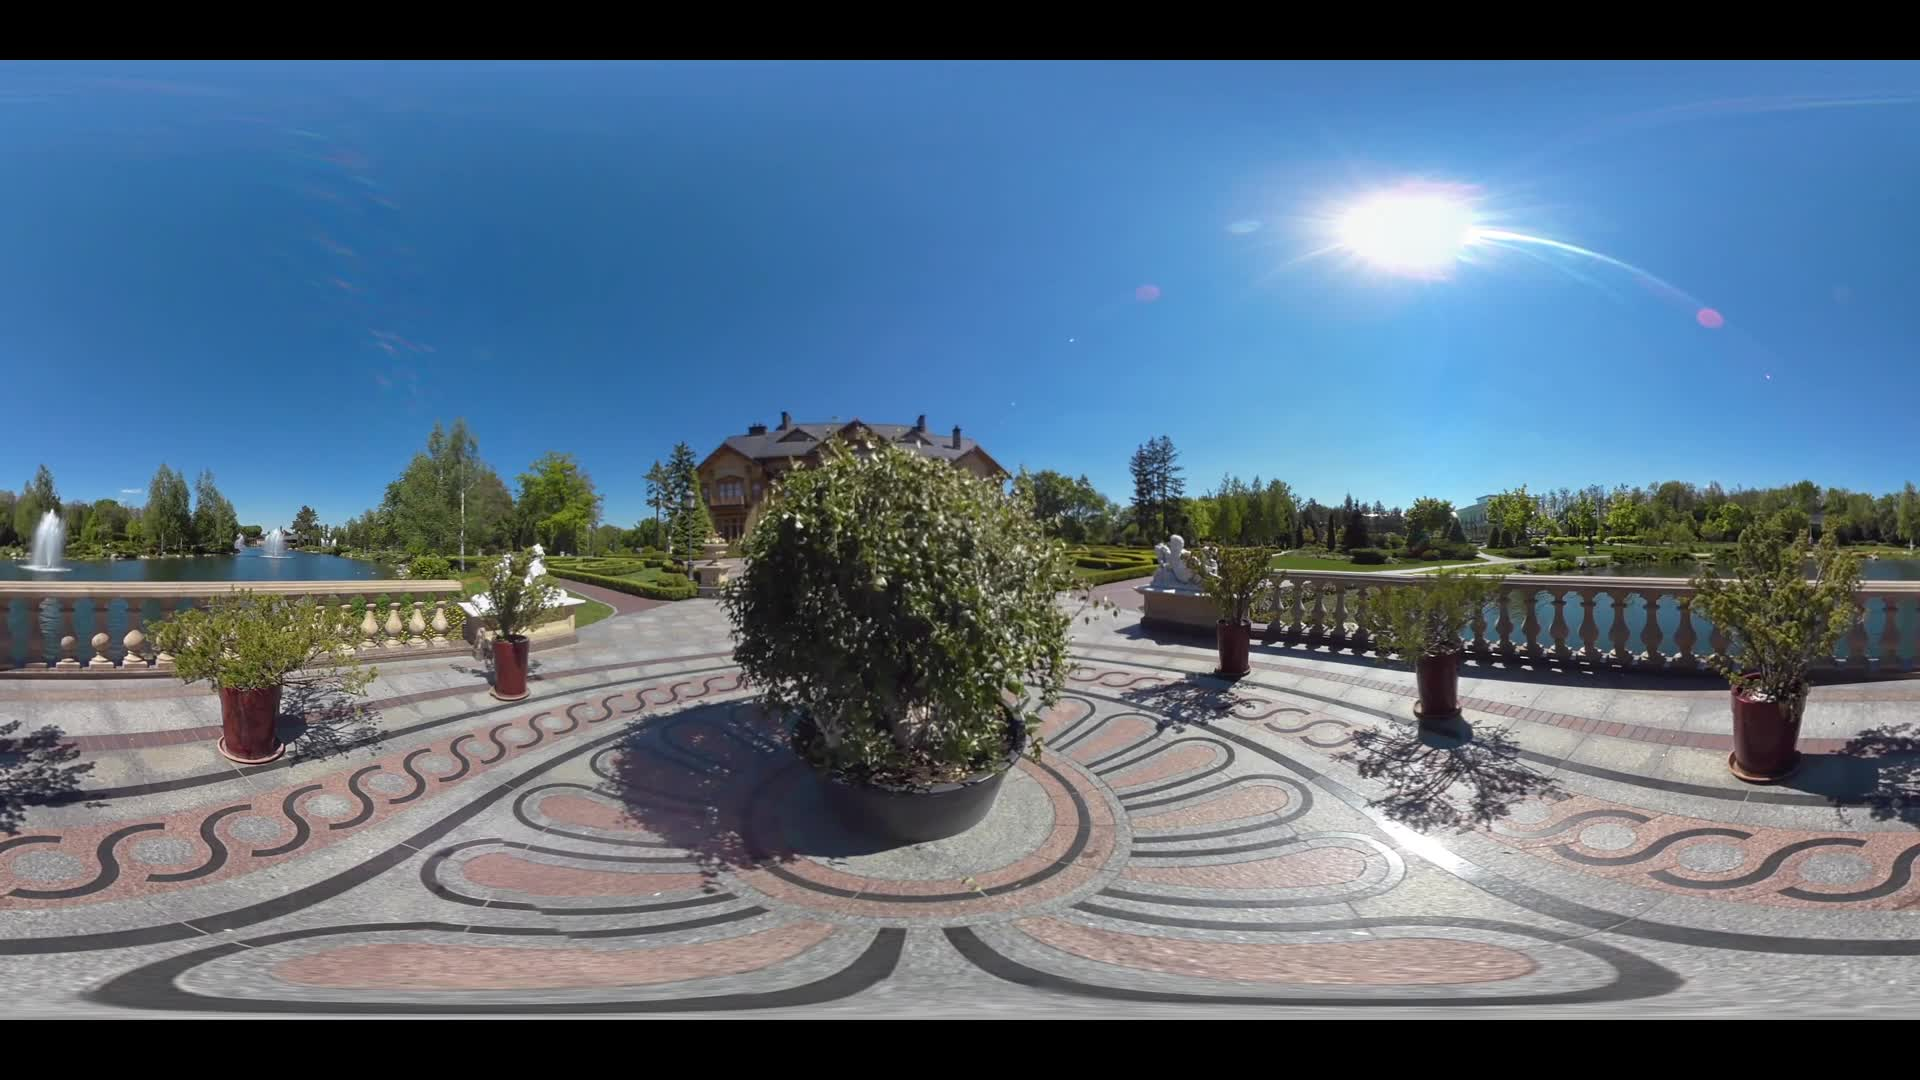 Beautiful view green garden on background brick mansion. Summer garden landscape design 360 degrees panorama. Landscape yard in private residence 360 view